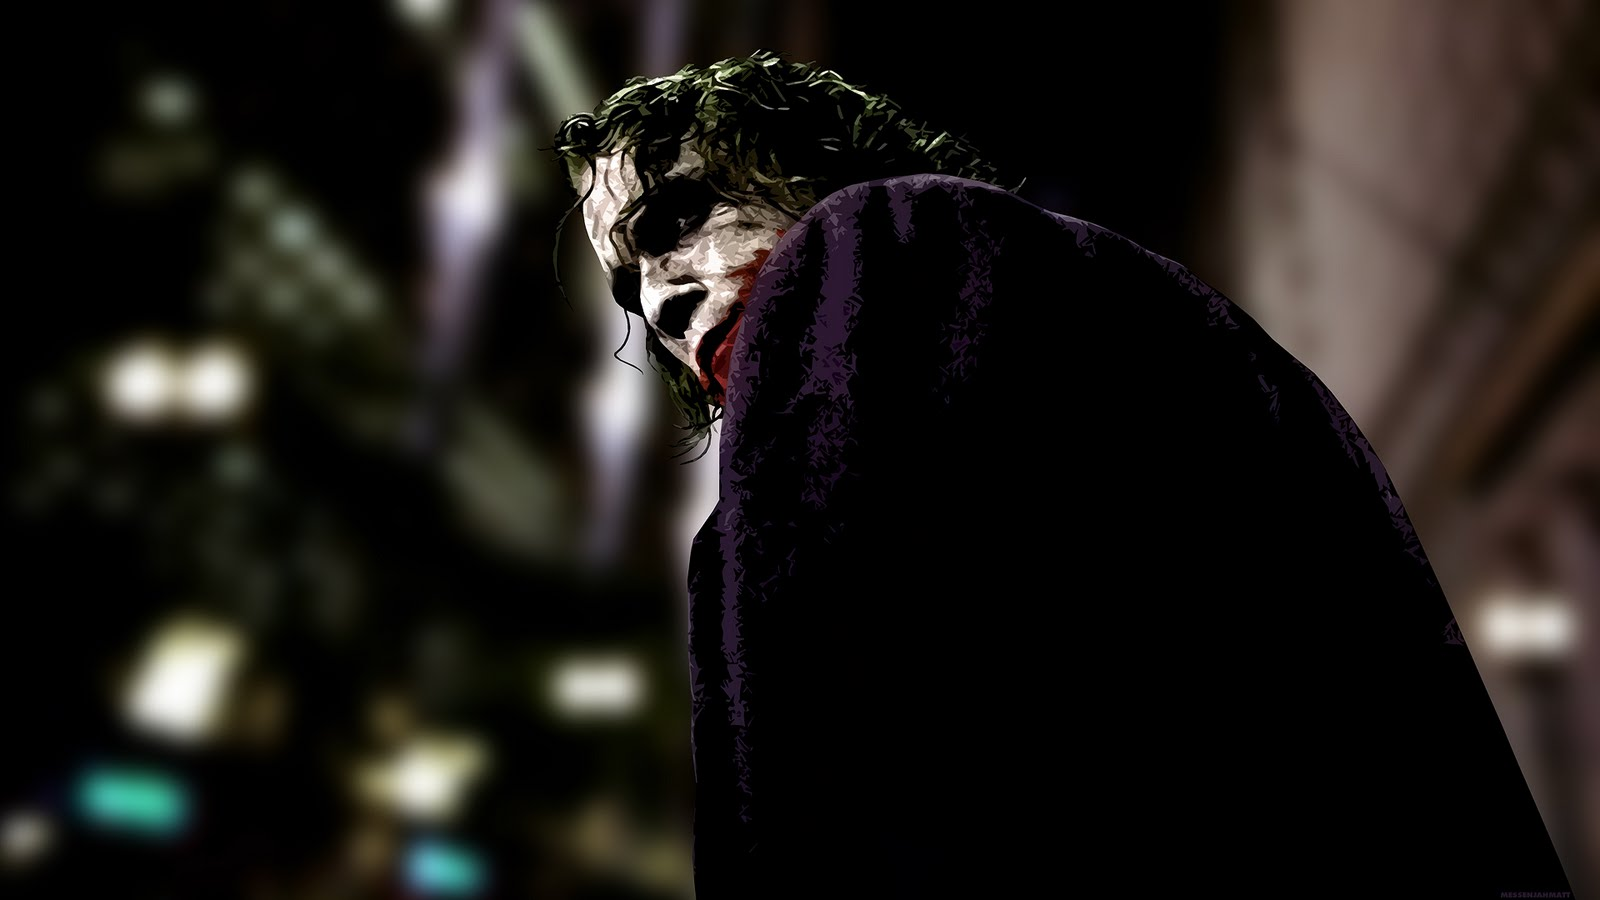 hq hd 2014 wallpapers joker wallpaper joker wallpaper 1600x900